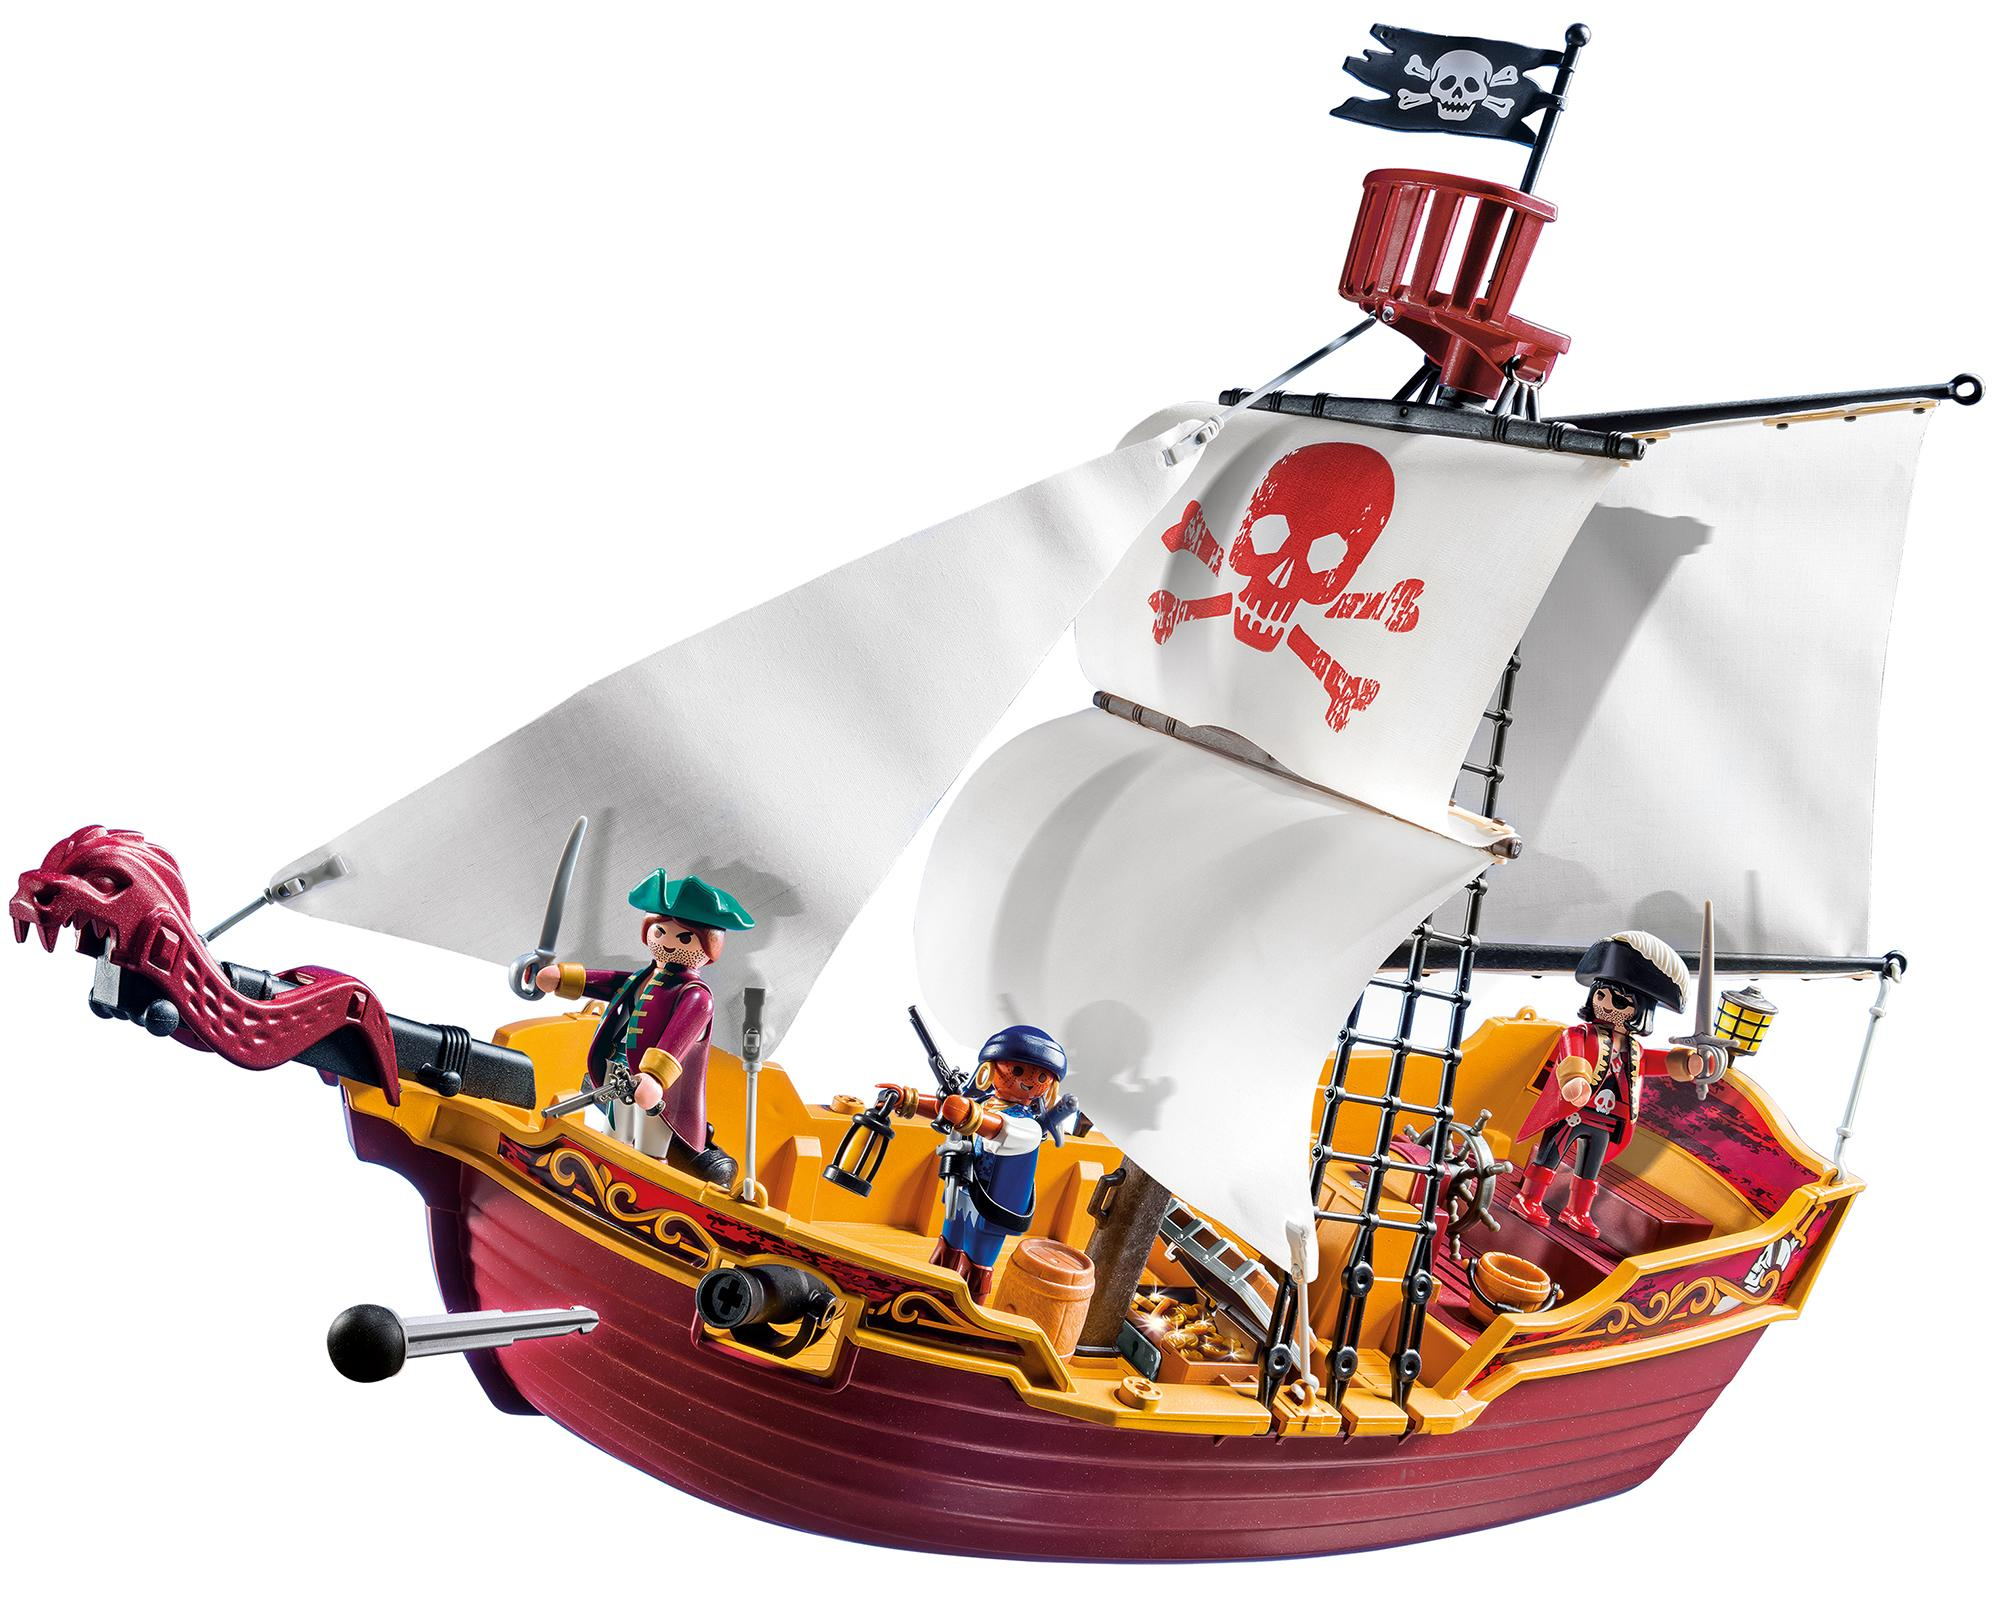 2000x1600 Playmobil Red Serpent Pirate Ship Toys Amp Games